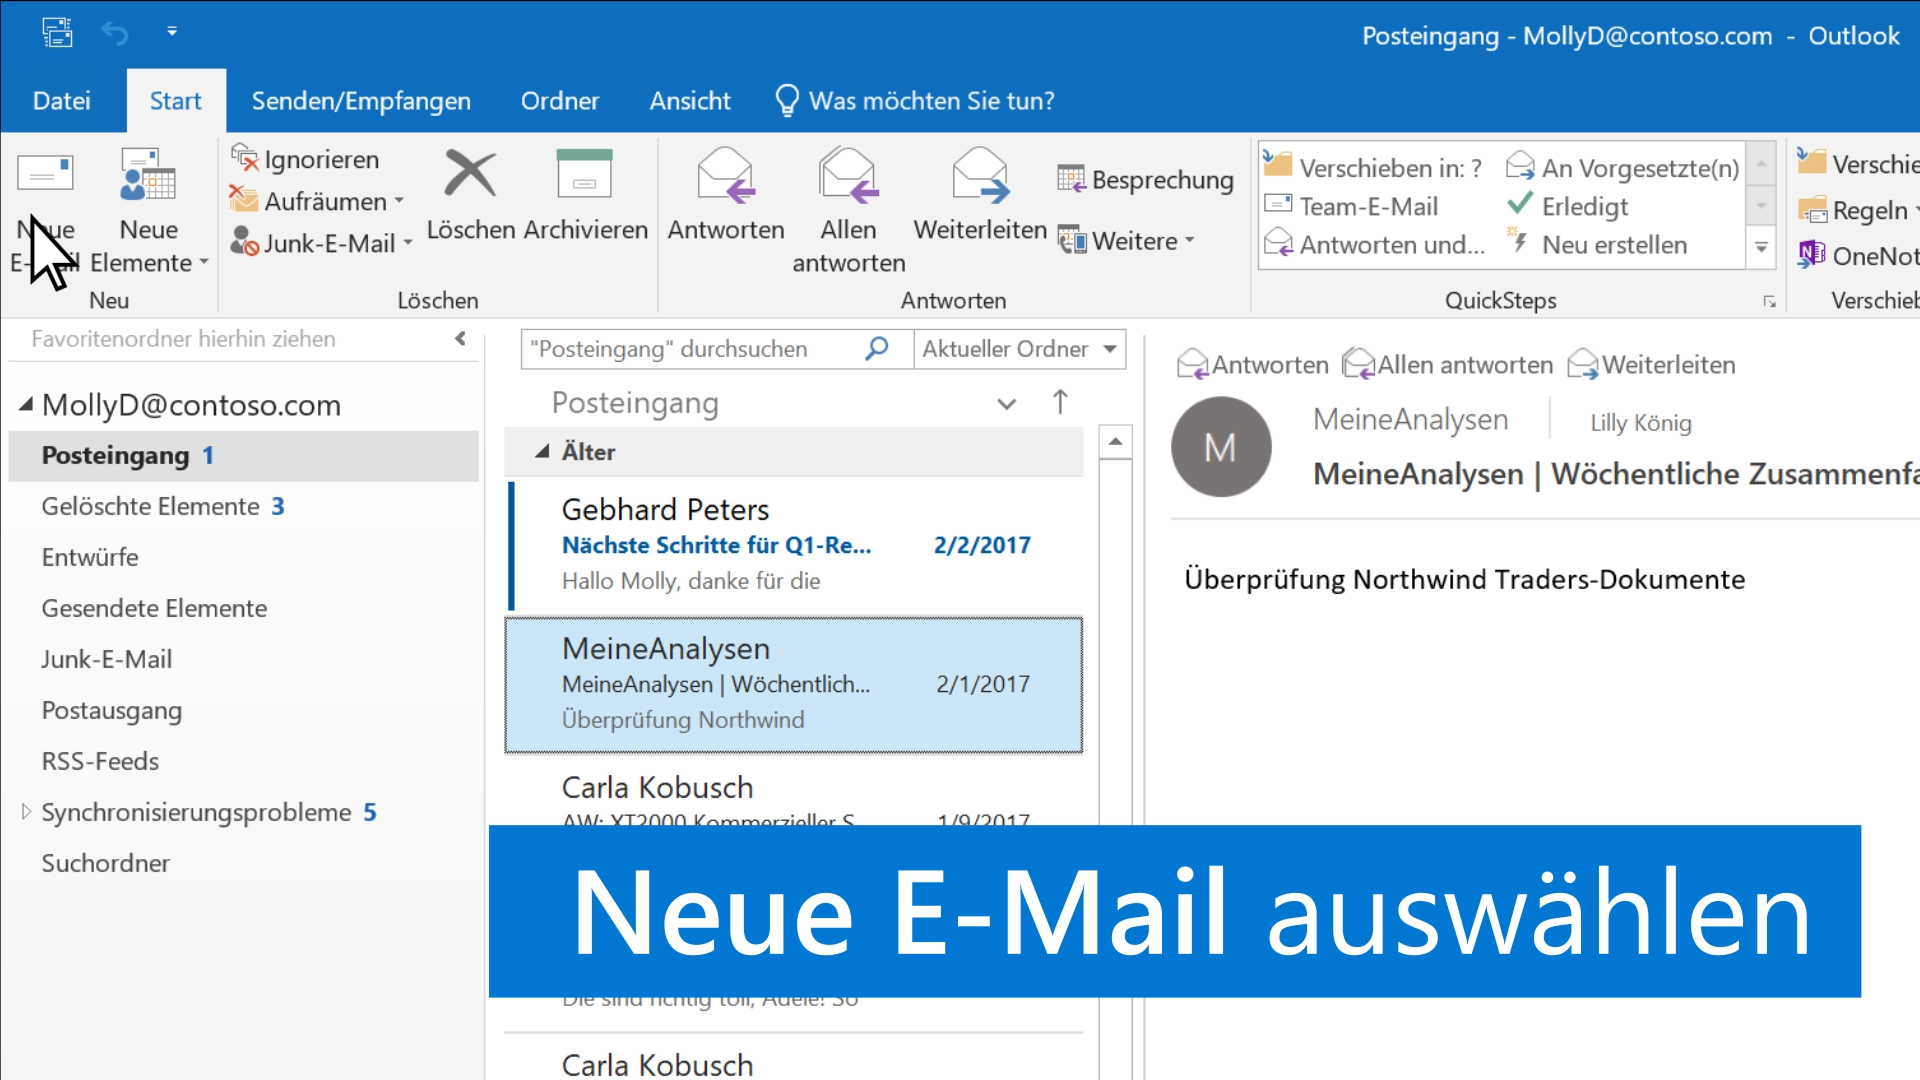 Internet datiert zweite E-Mail